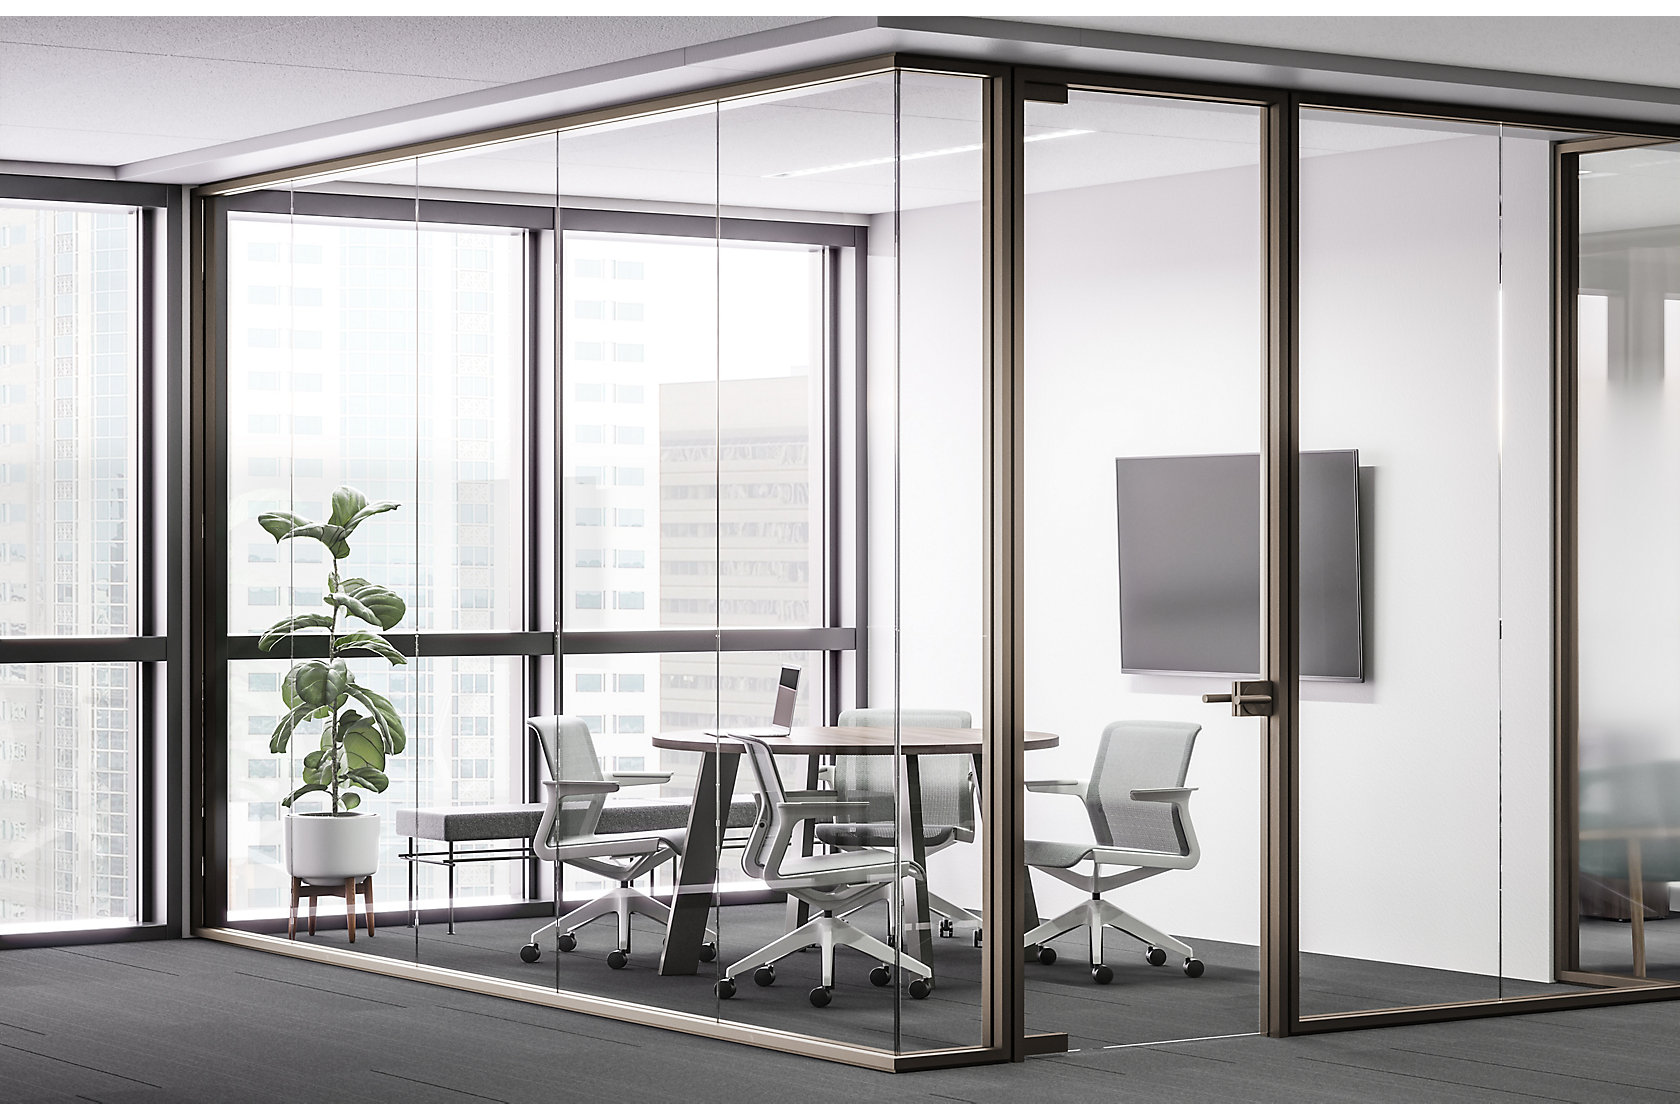 Aspect Conference Room